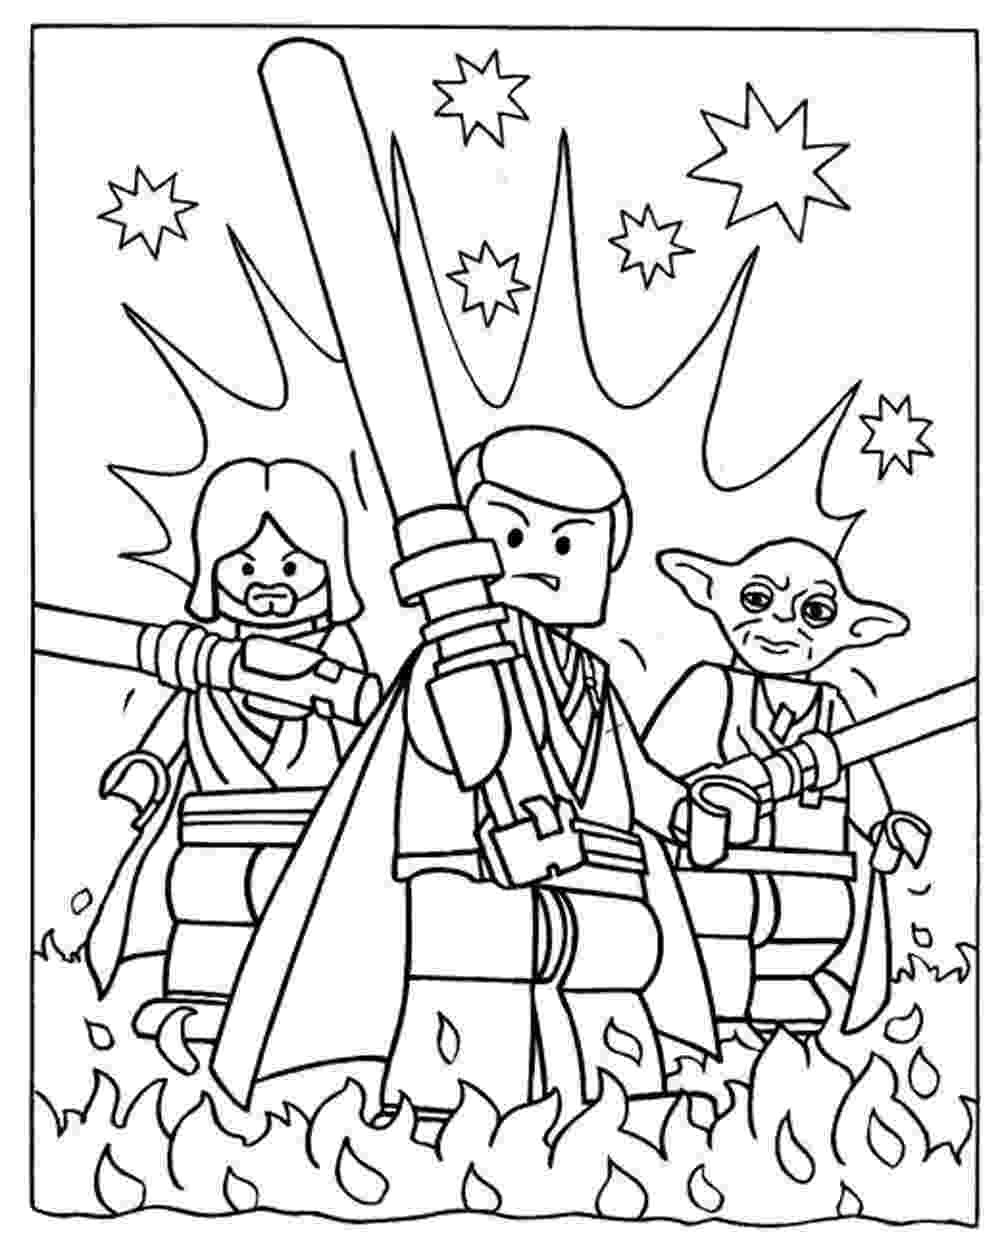 coloriage lego star wars dessin de lego star wars a imprimer coloriage wars lego star